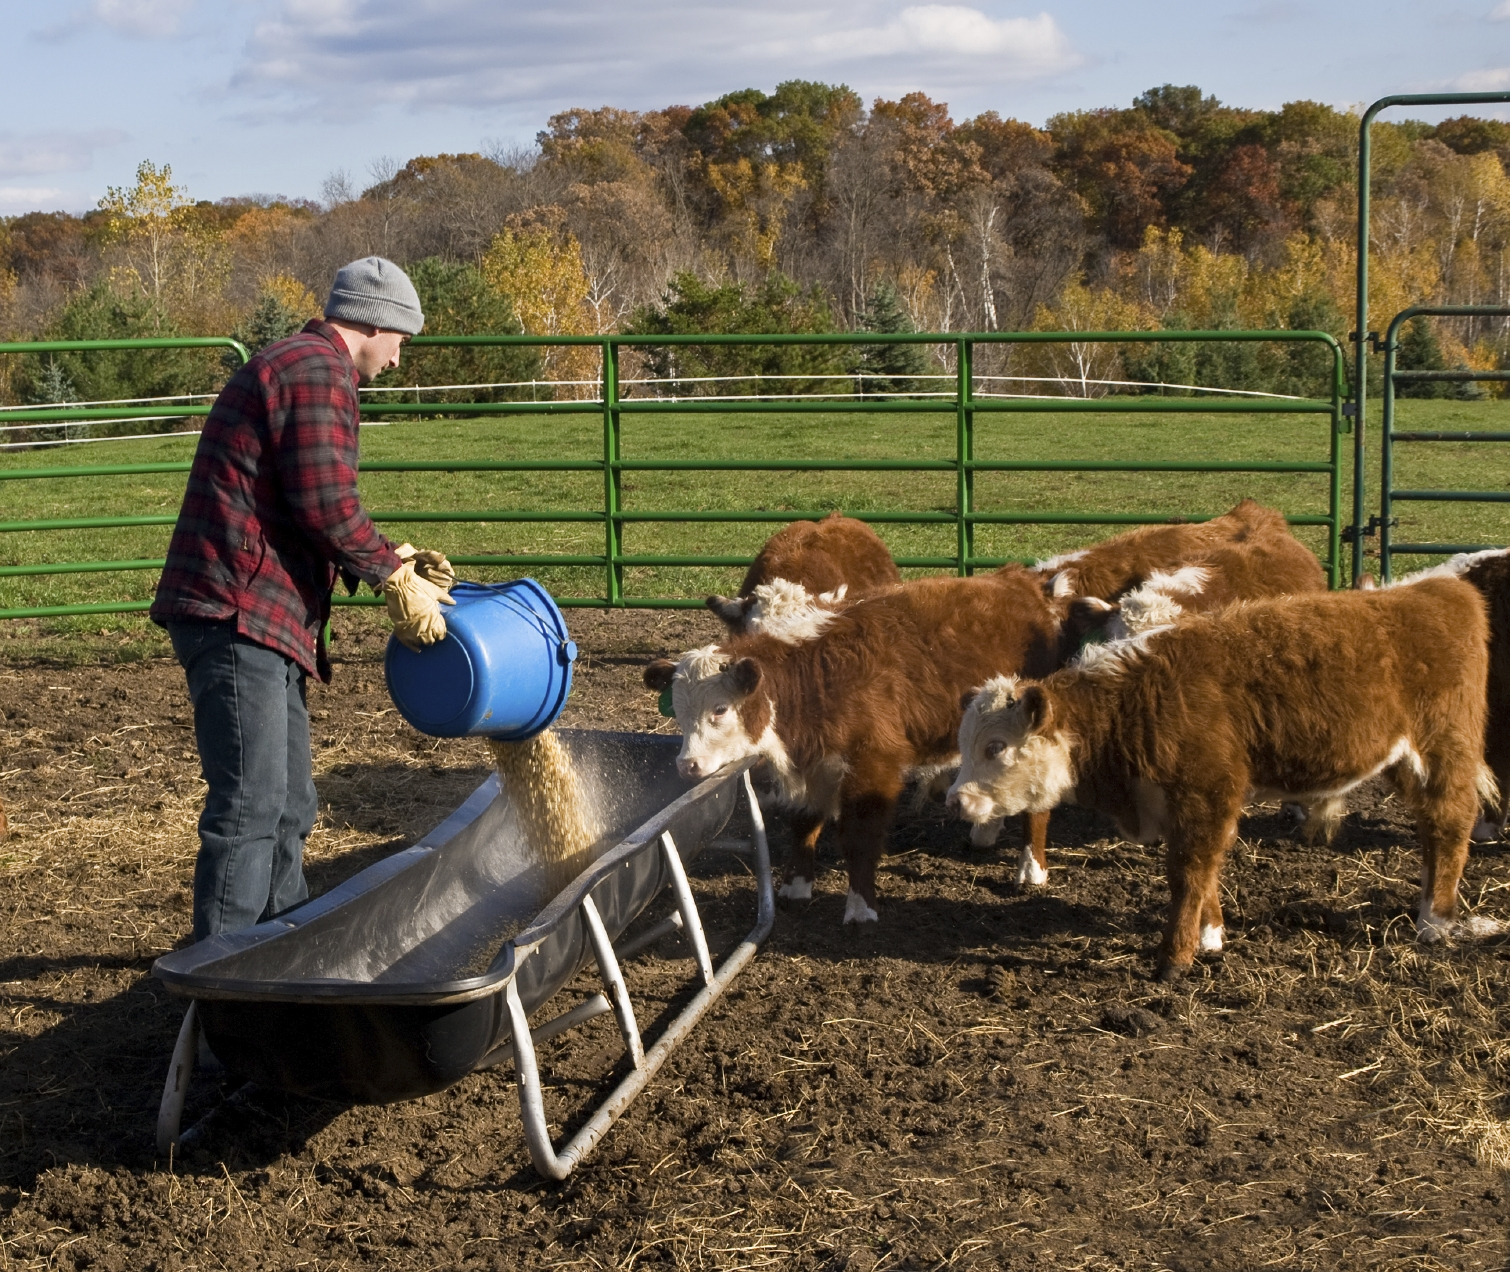 Feed: Animal Feed And Automobiles Make The San Joaquin Valley A